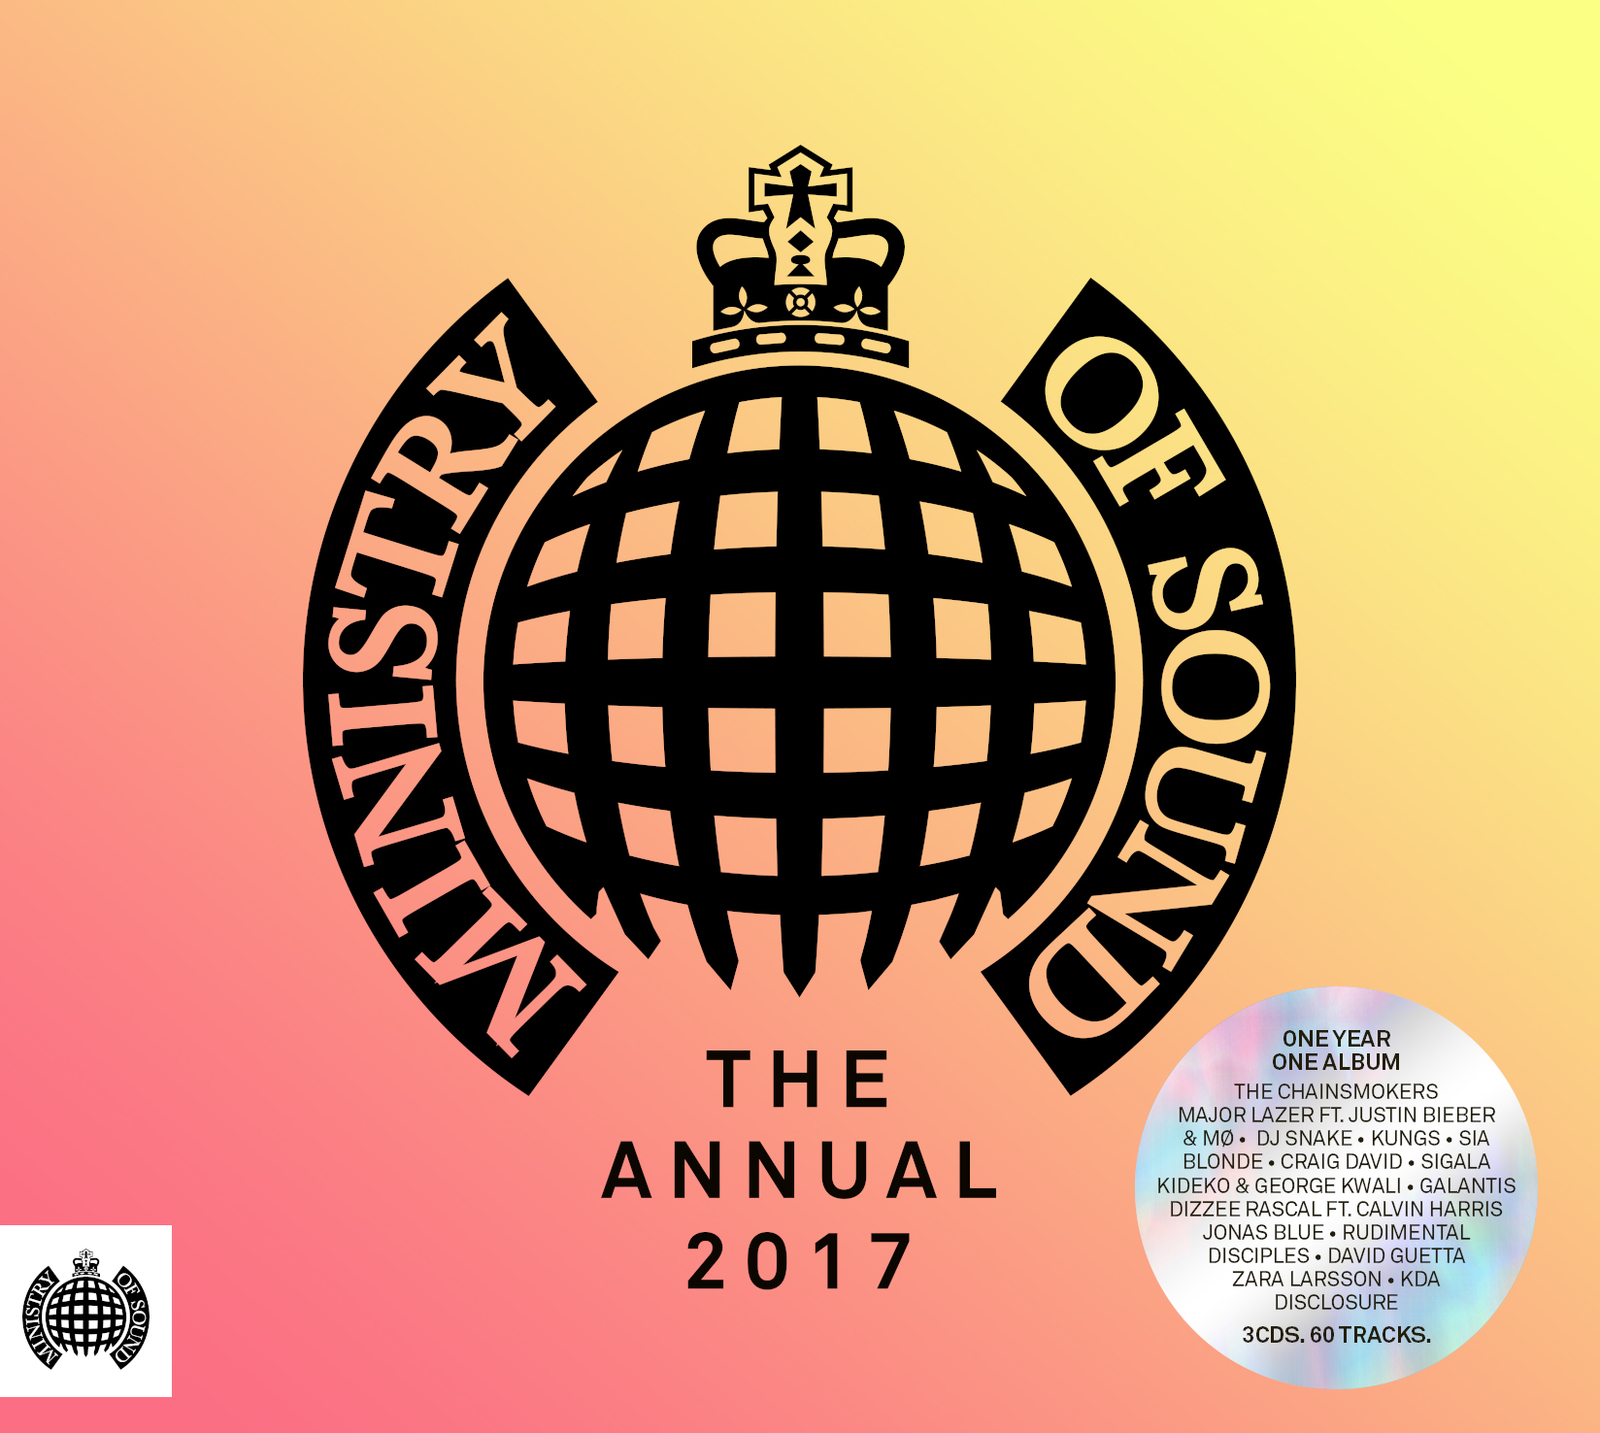 The Annual 2017 by Ministry Of Sound image